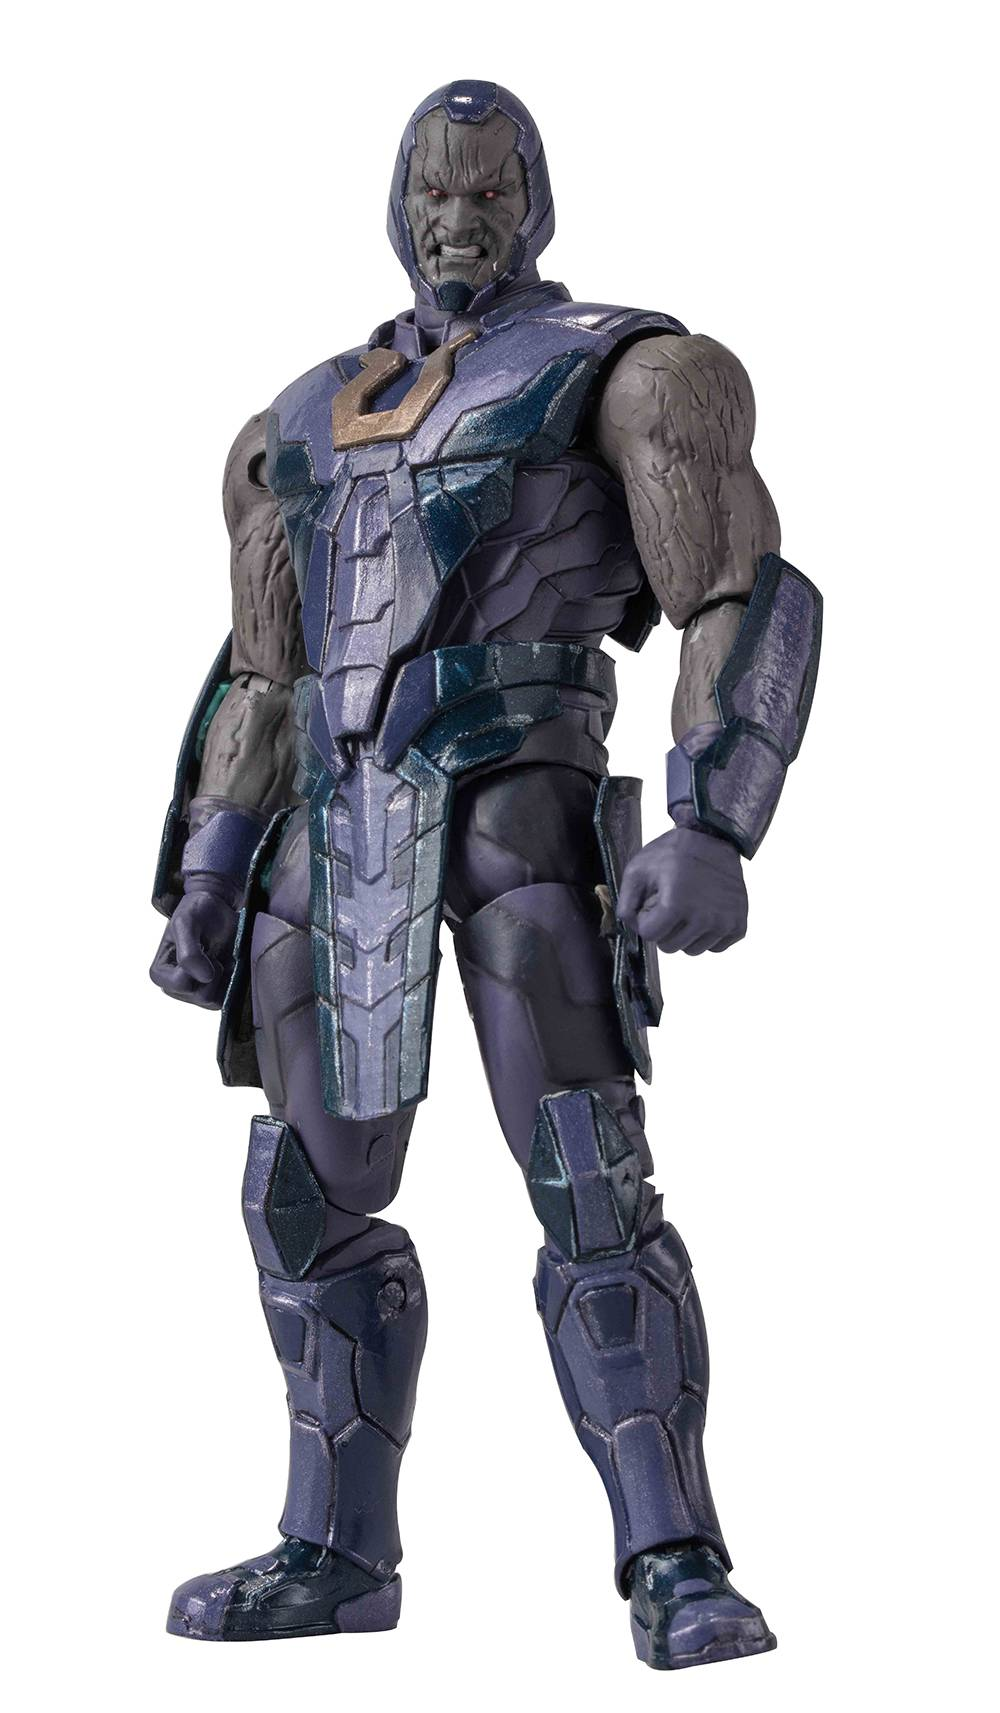 INJUSTICE 2 DARKSEID PX 1/18 SCALE FIG